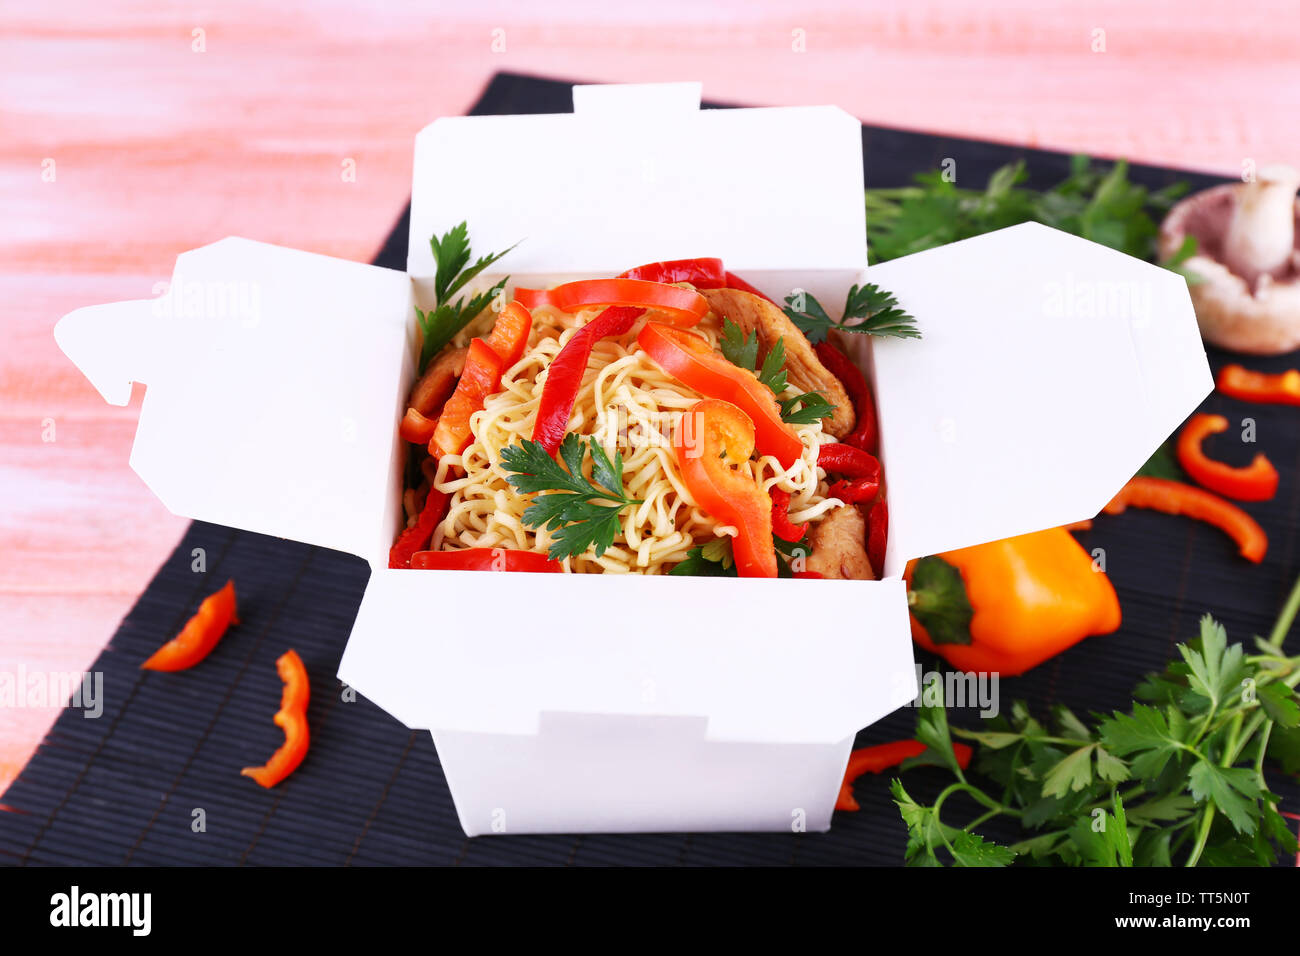 Chinese noodles in takeaway box on black mat on pink background - Stock Image